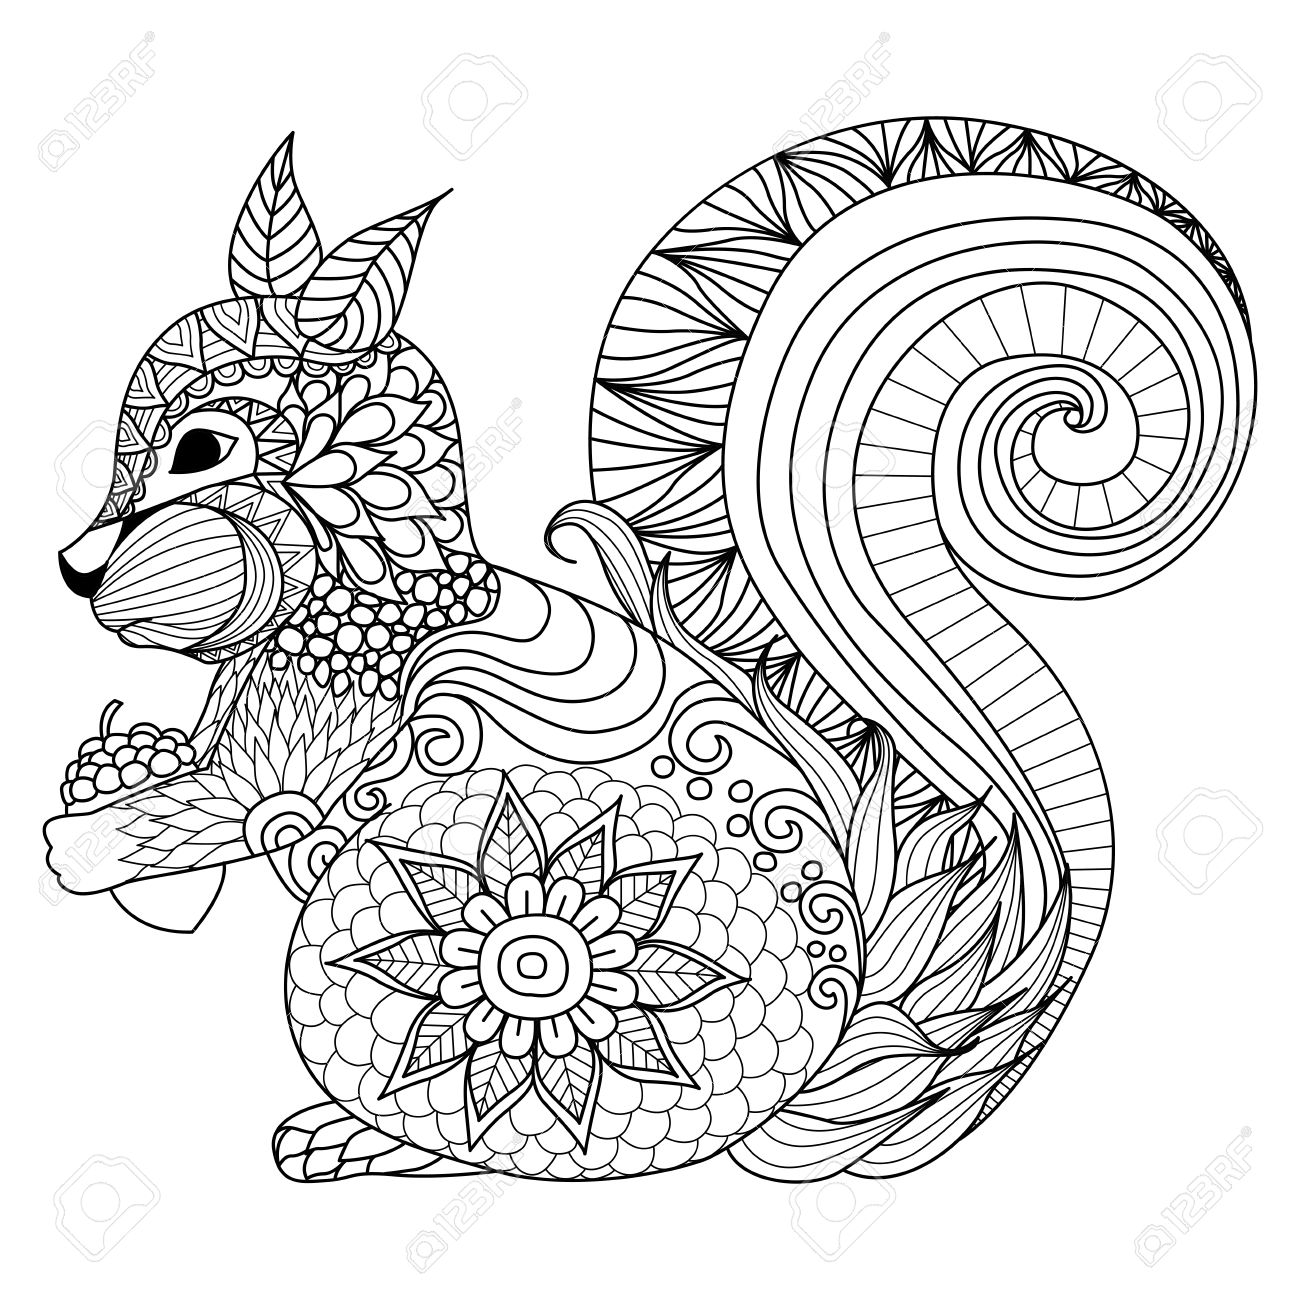 Tattoo designs coloring book - Hand Drawn Squirrel Zentangle Style For Coloring Book Tattoo T Shirt Design Logo